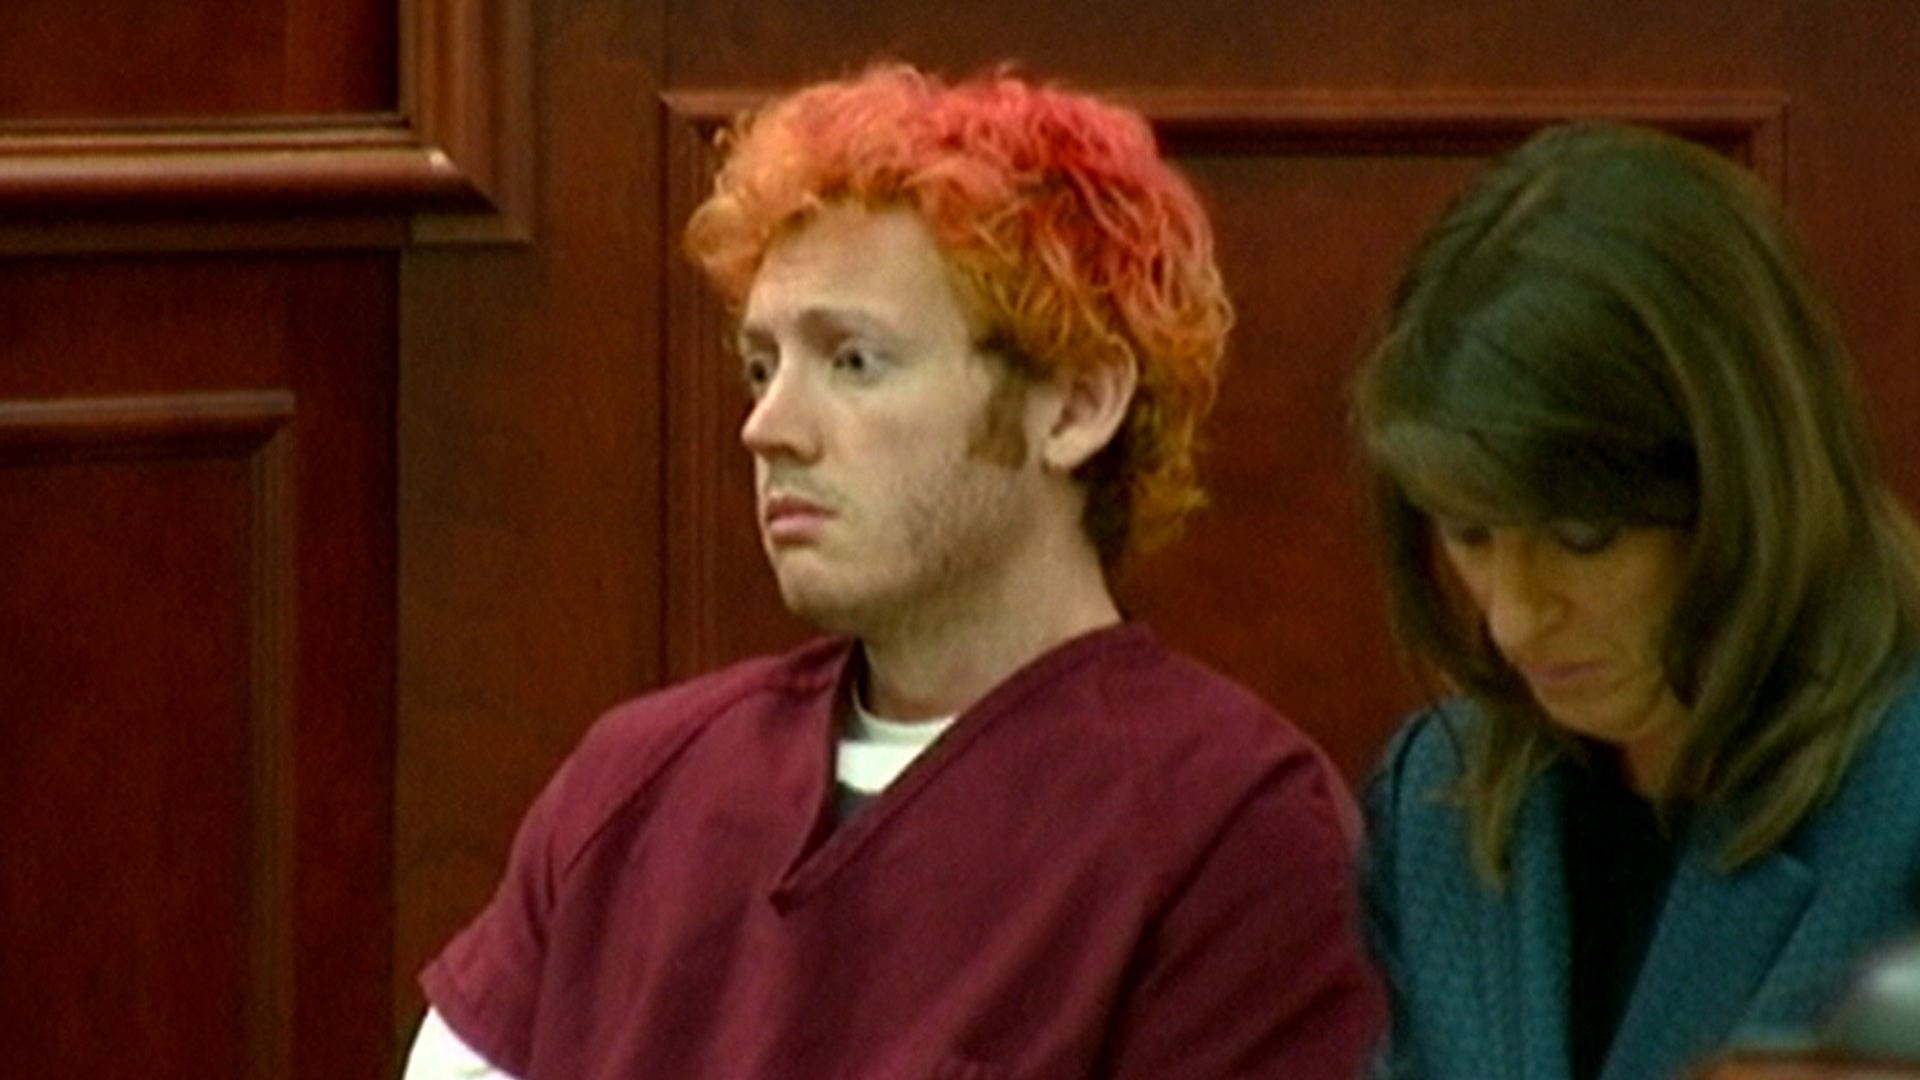 james holmes A colorado jury decided that james holmes shouldn't receive the death penalty and will serve life in prison without parole for killing 12 people and injuring 70 during a mass shooting at an.